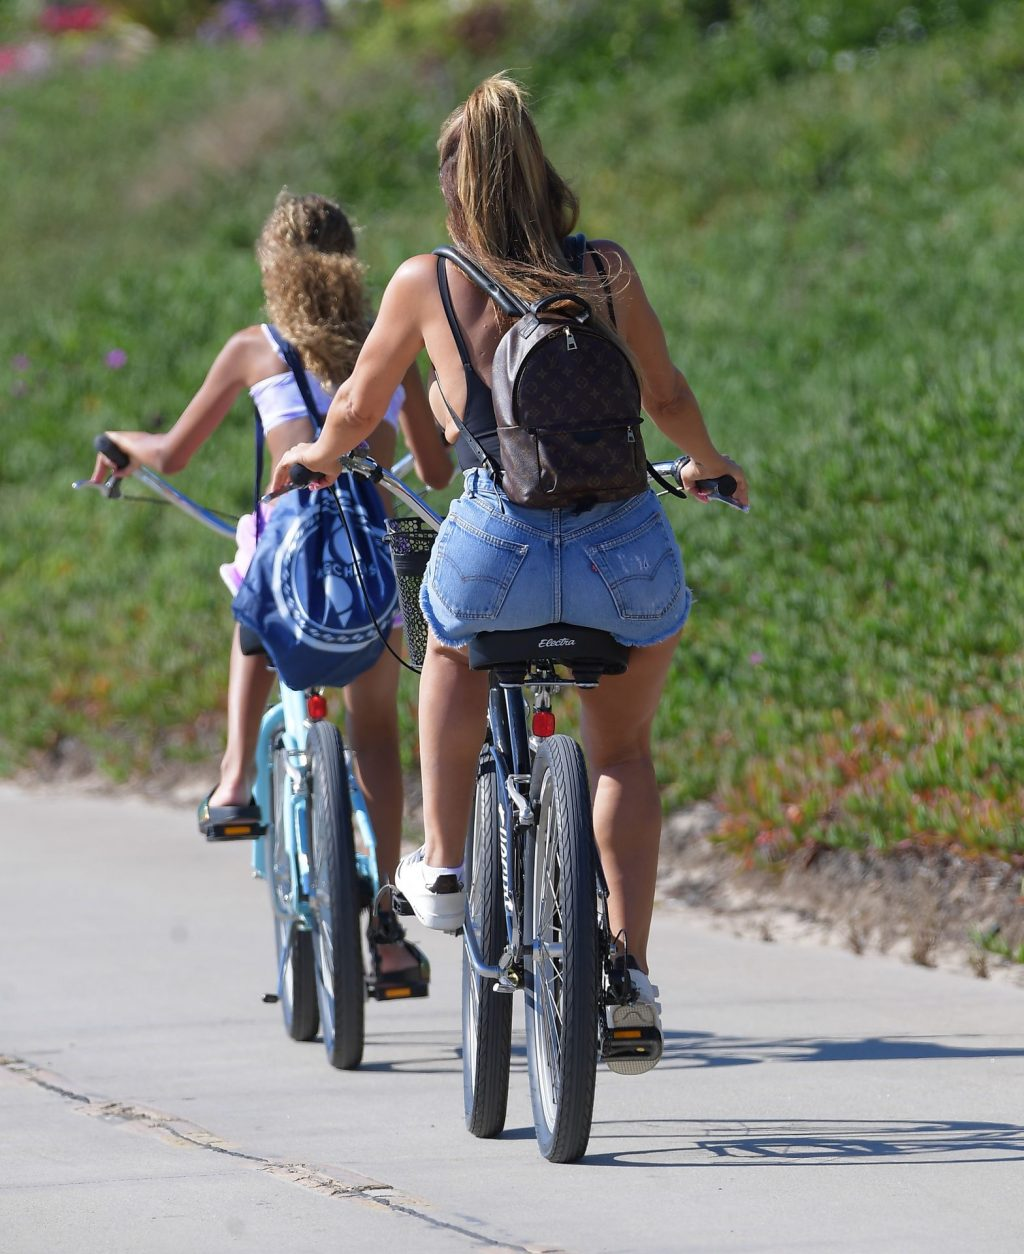 Larsa Pippen Puts On A Busty Display As She Rides Bikes In Manhattan Beach (14 Photos)